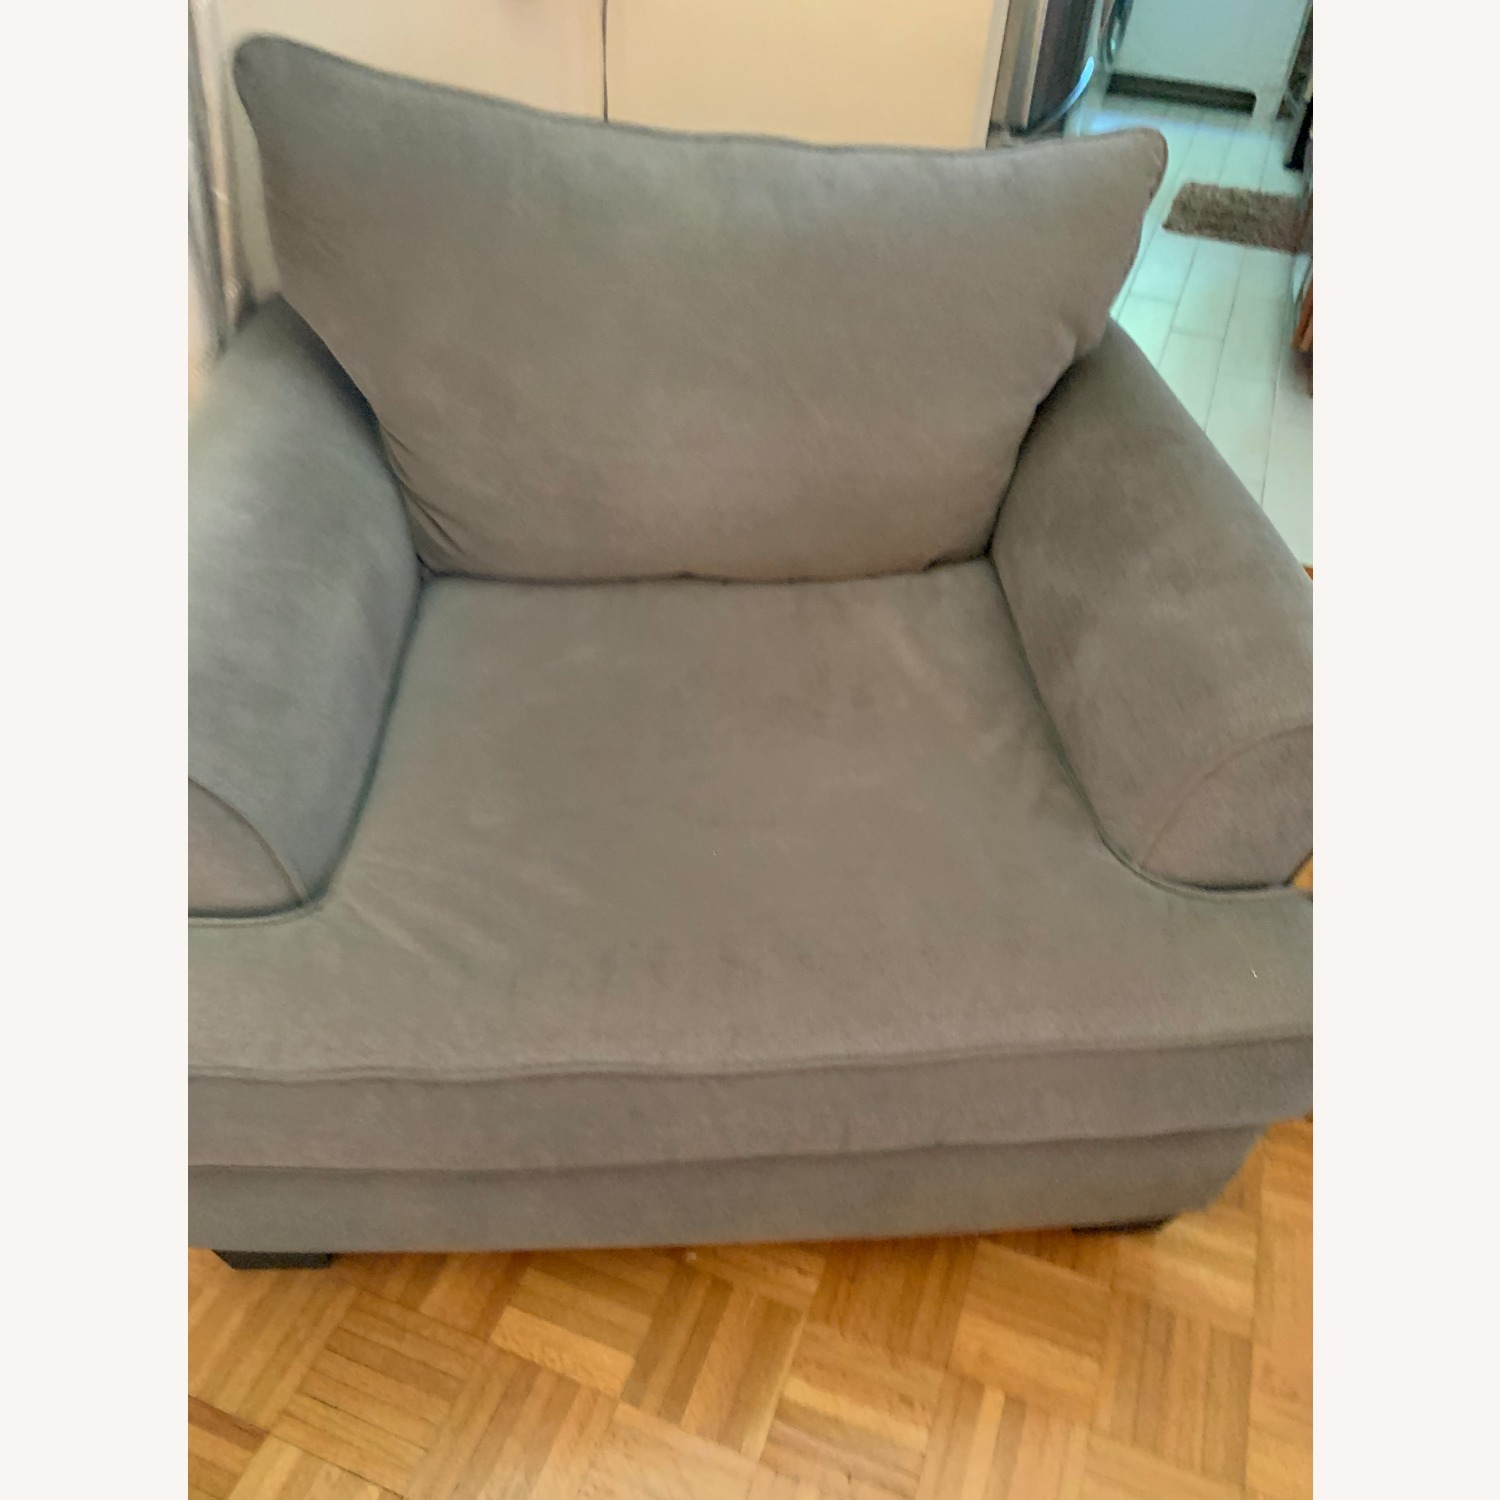 Raymour & Flanigan Large Chair with Matching Ottoman - image-2